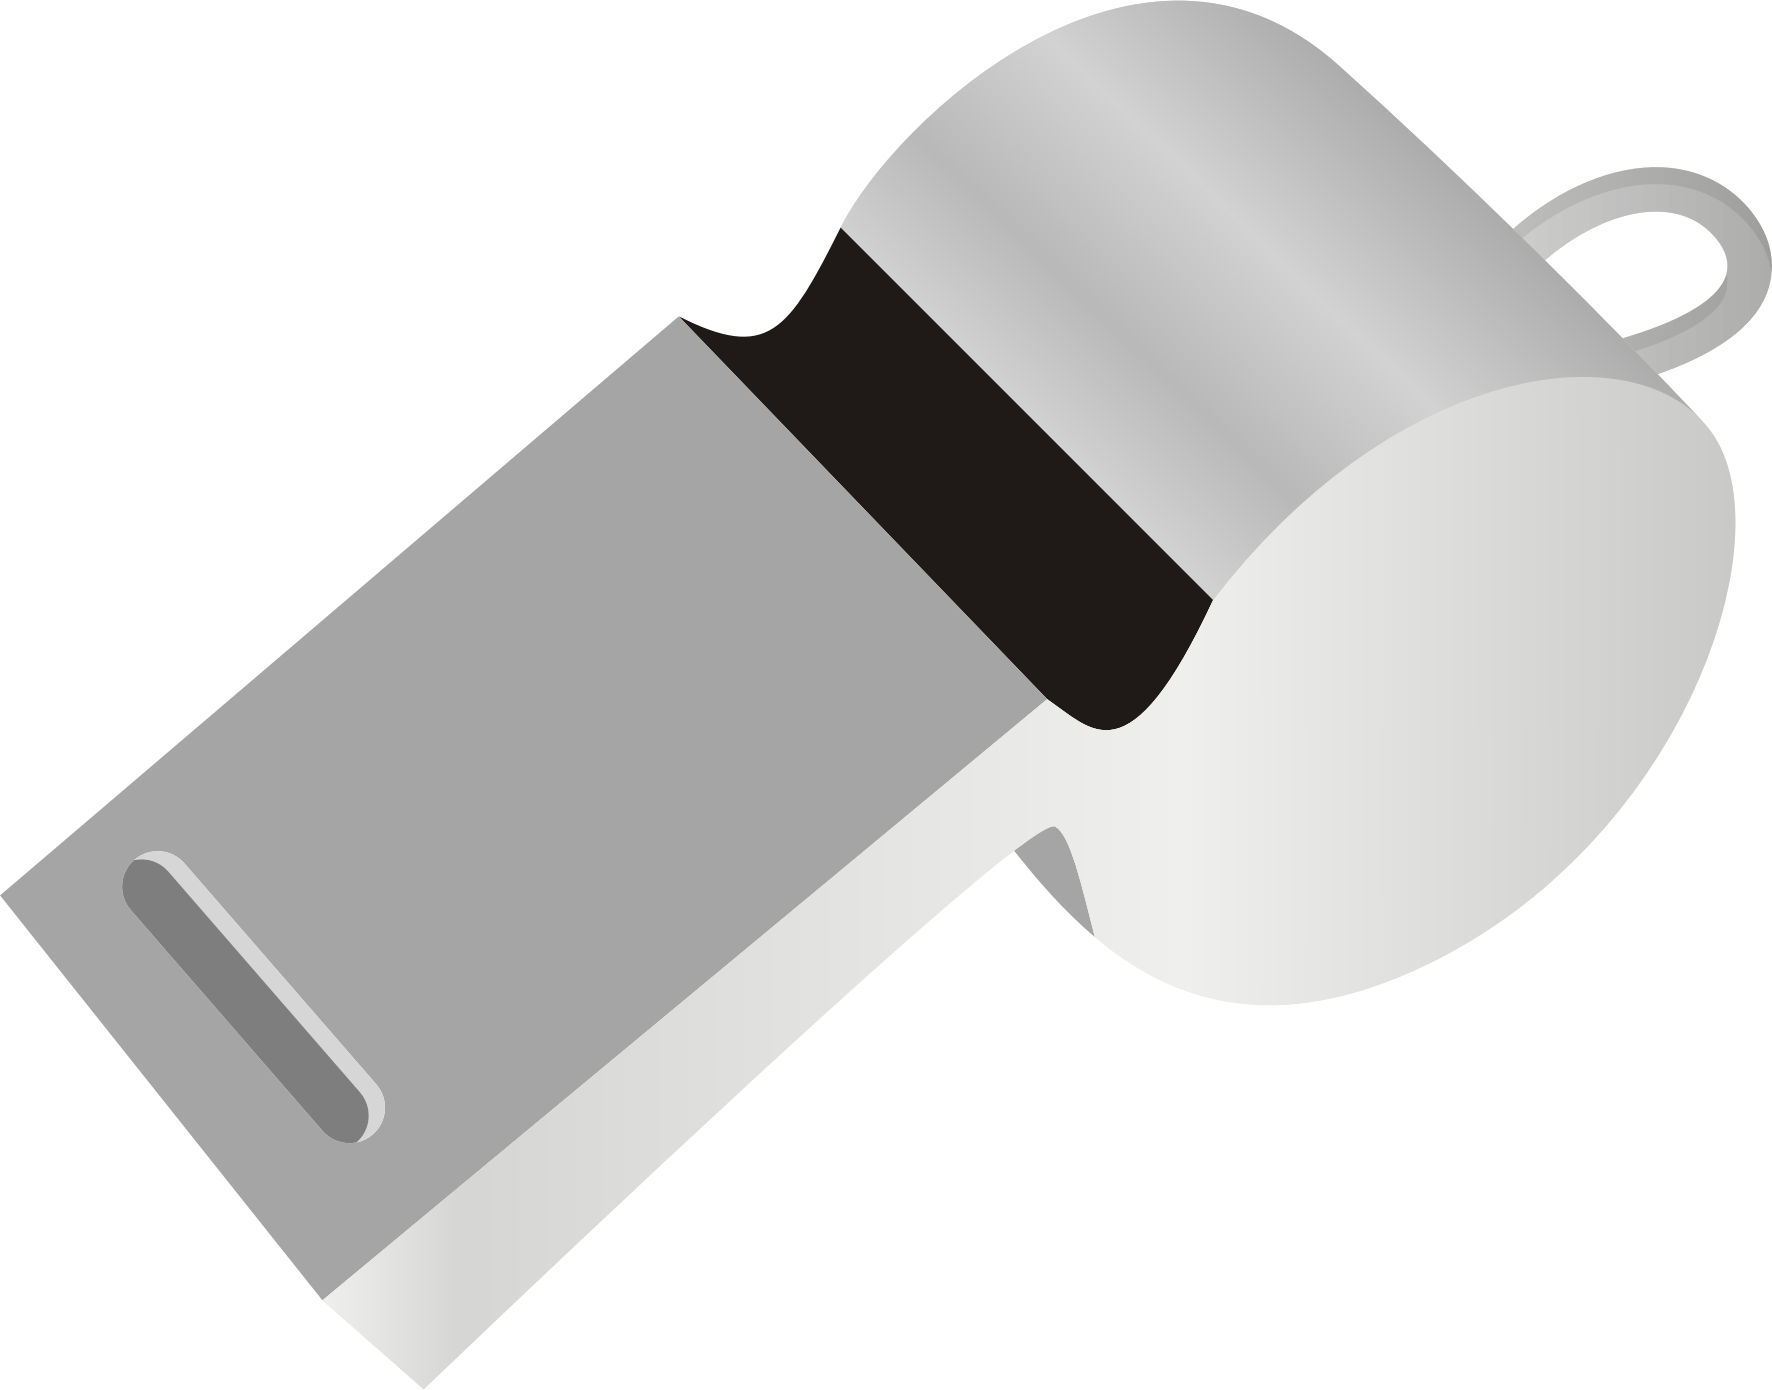 Big Image (Png) - Whistle, Transparent background PNG HD thumbnail